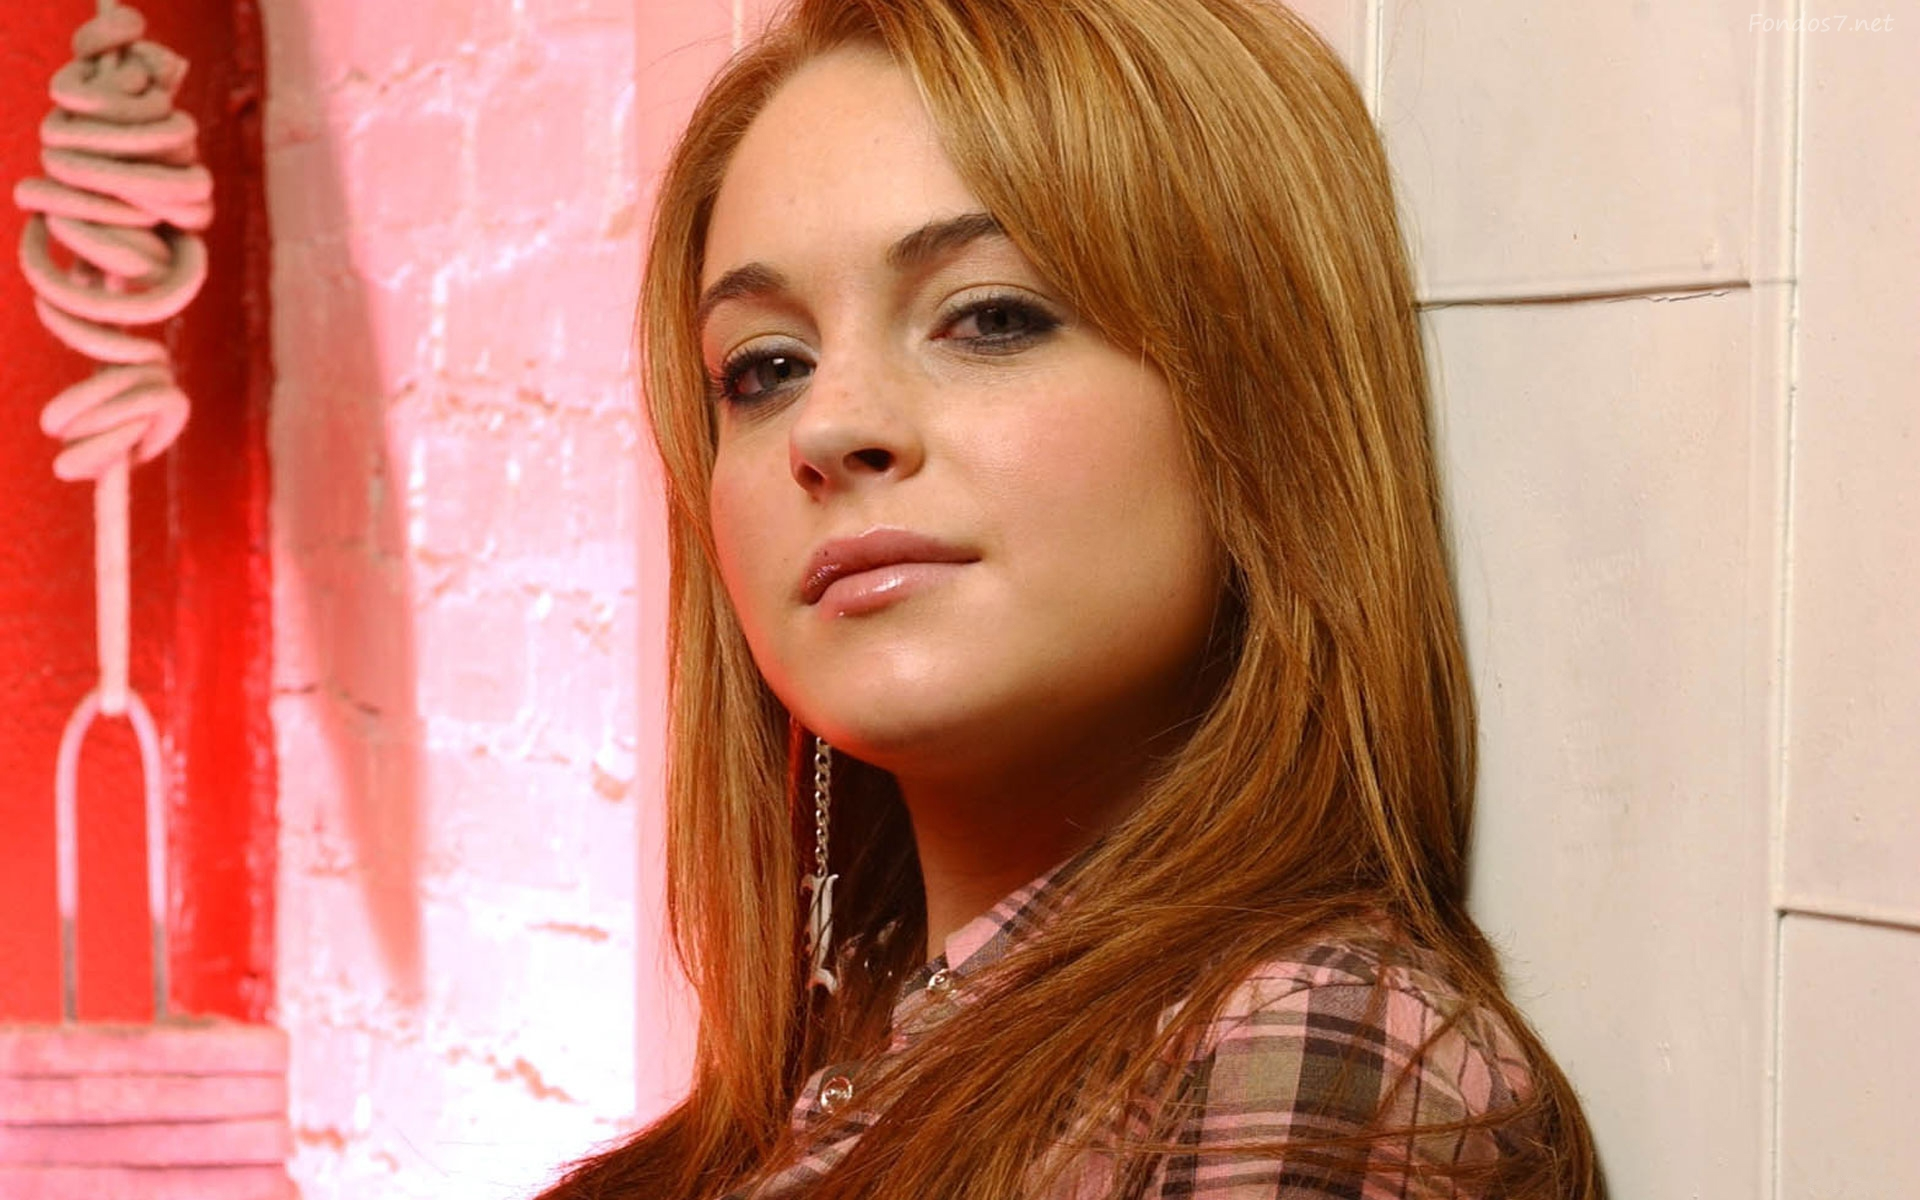 lindsay lohan wallpapers high quality | download free